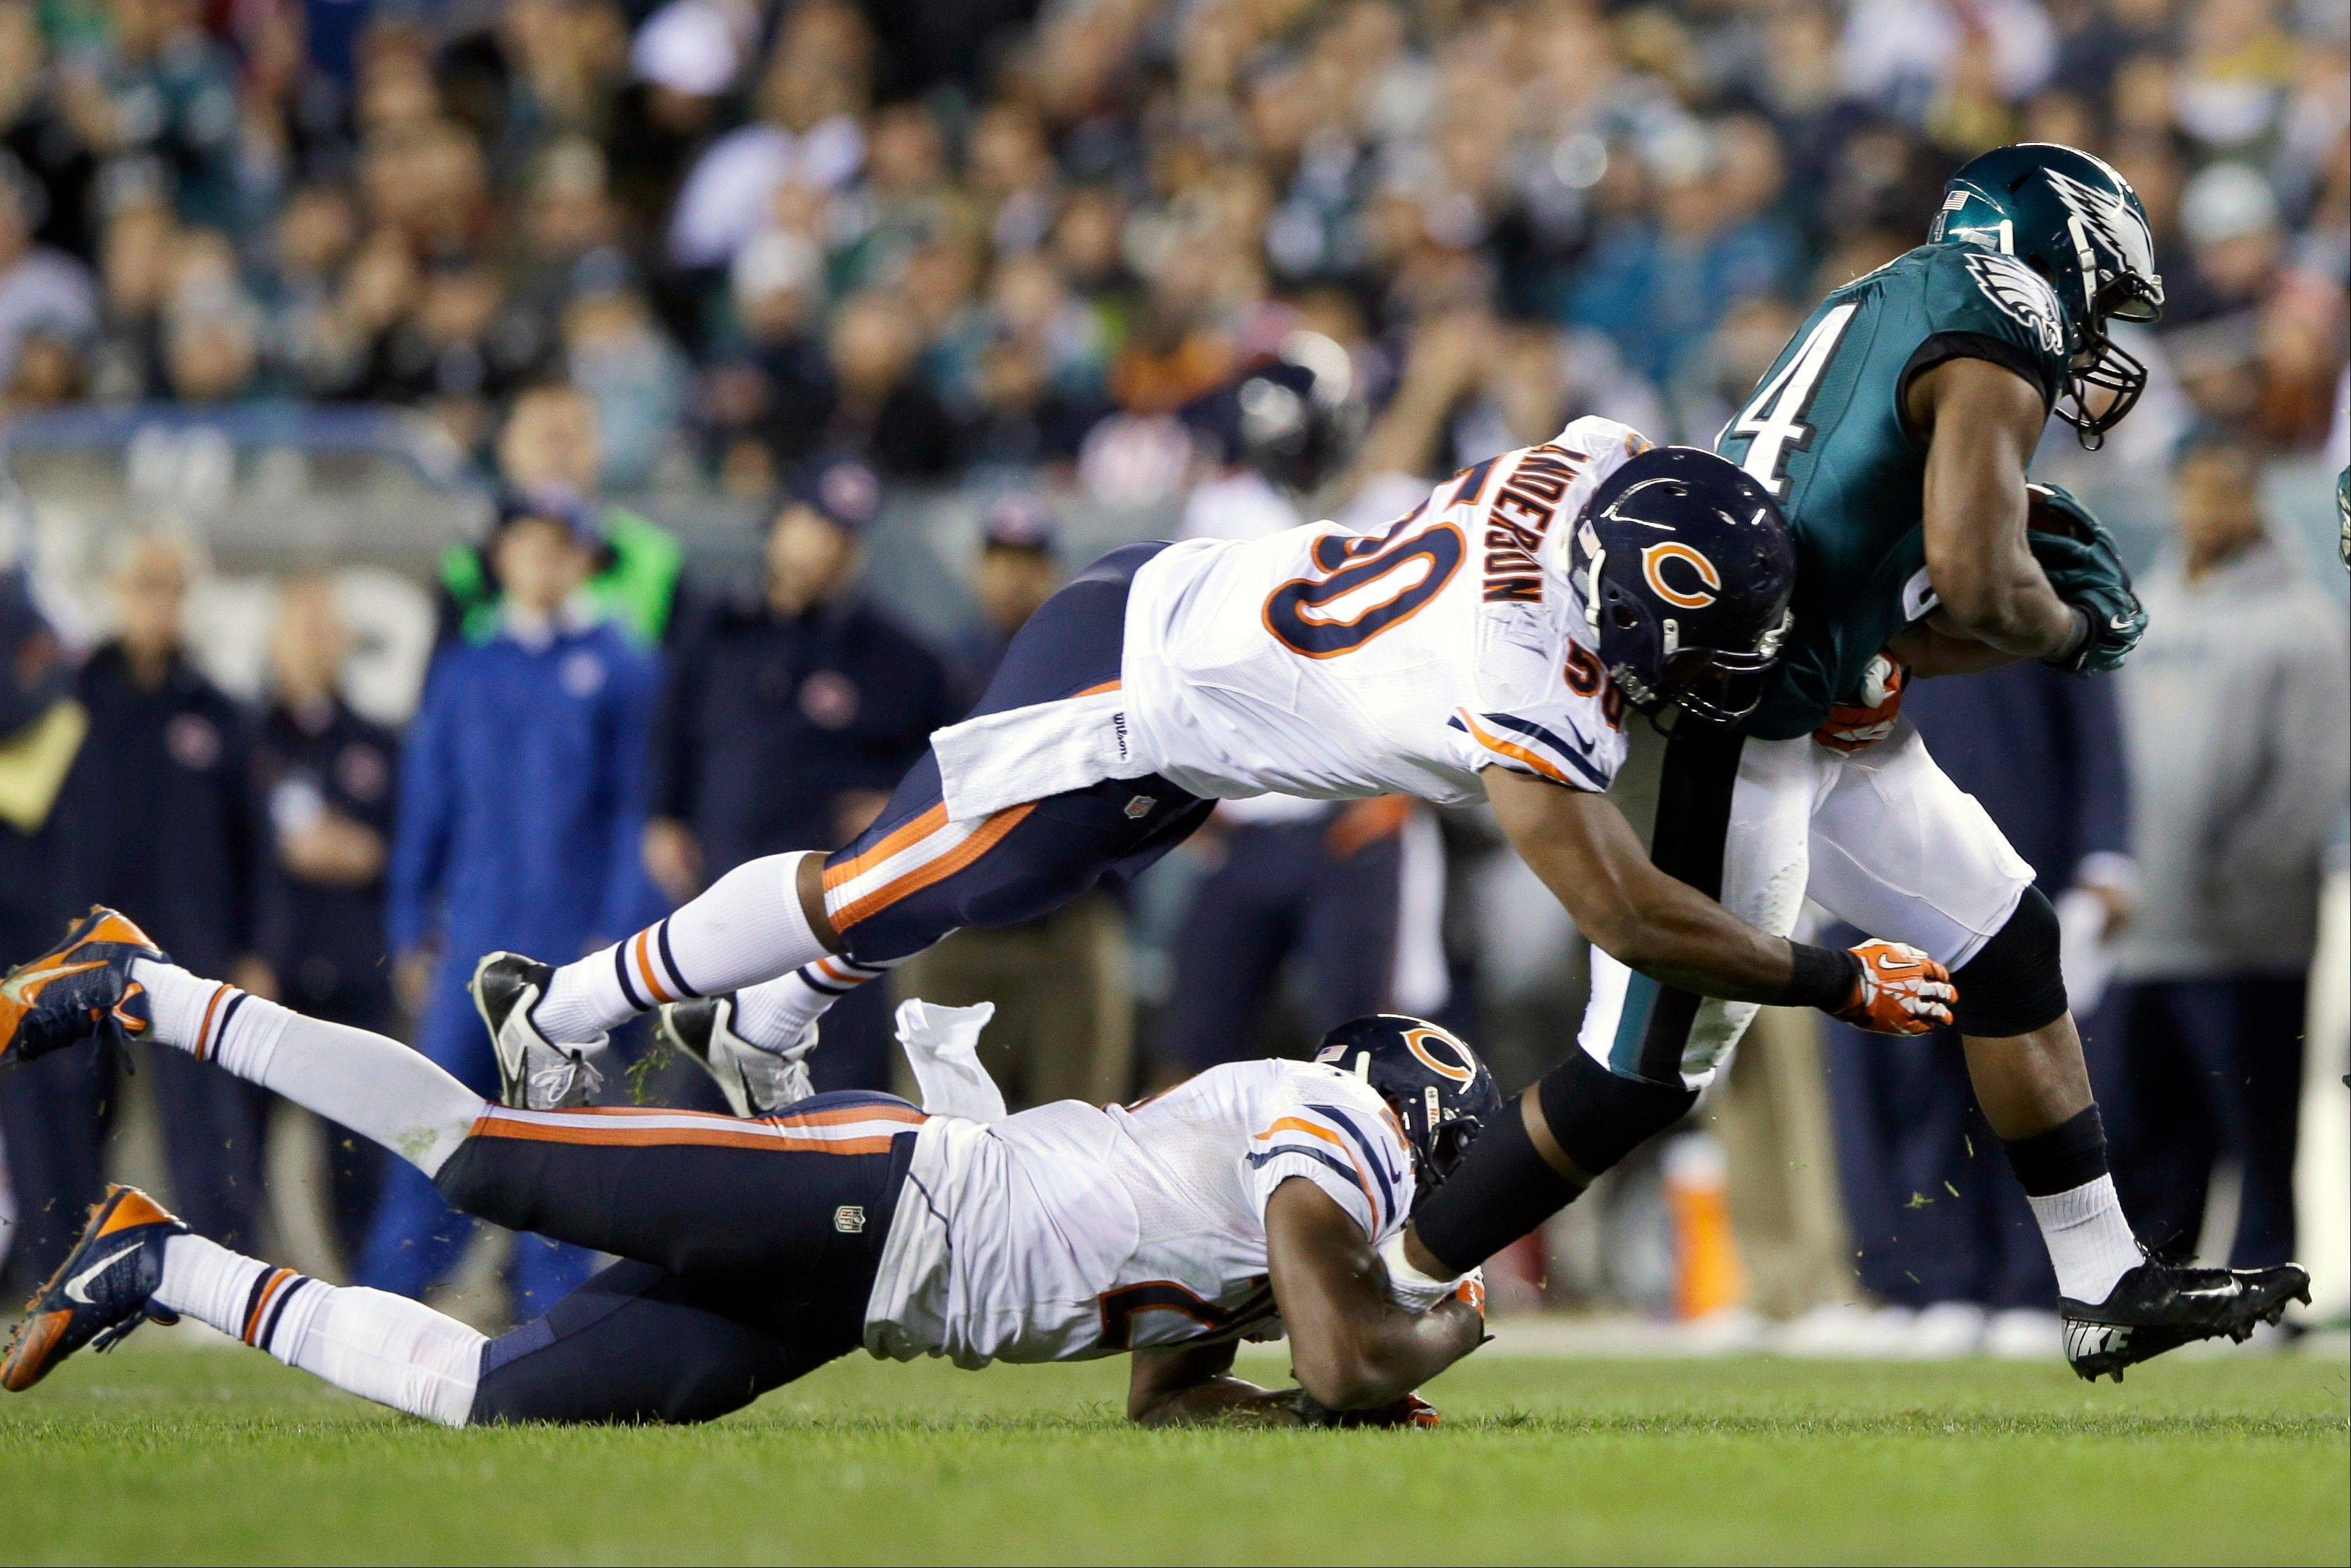 The Philadelphia Eagles' Bryce Brown, right, breaks free of Bears James Anderson, top left, and Roc Carmichael during the second half of an NFL football game, Sunday, Dec. 22, 2013, in Philadelphia.